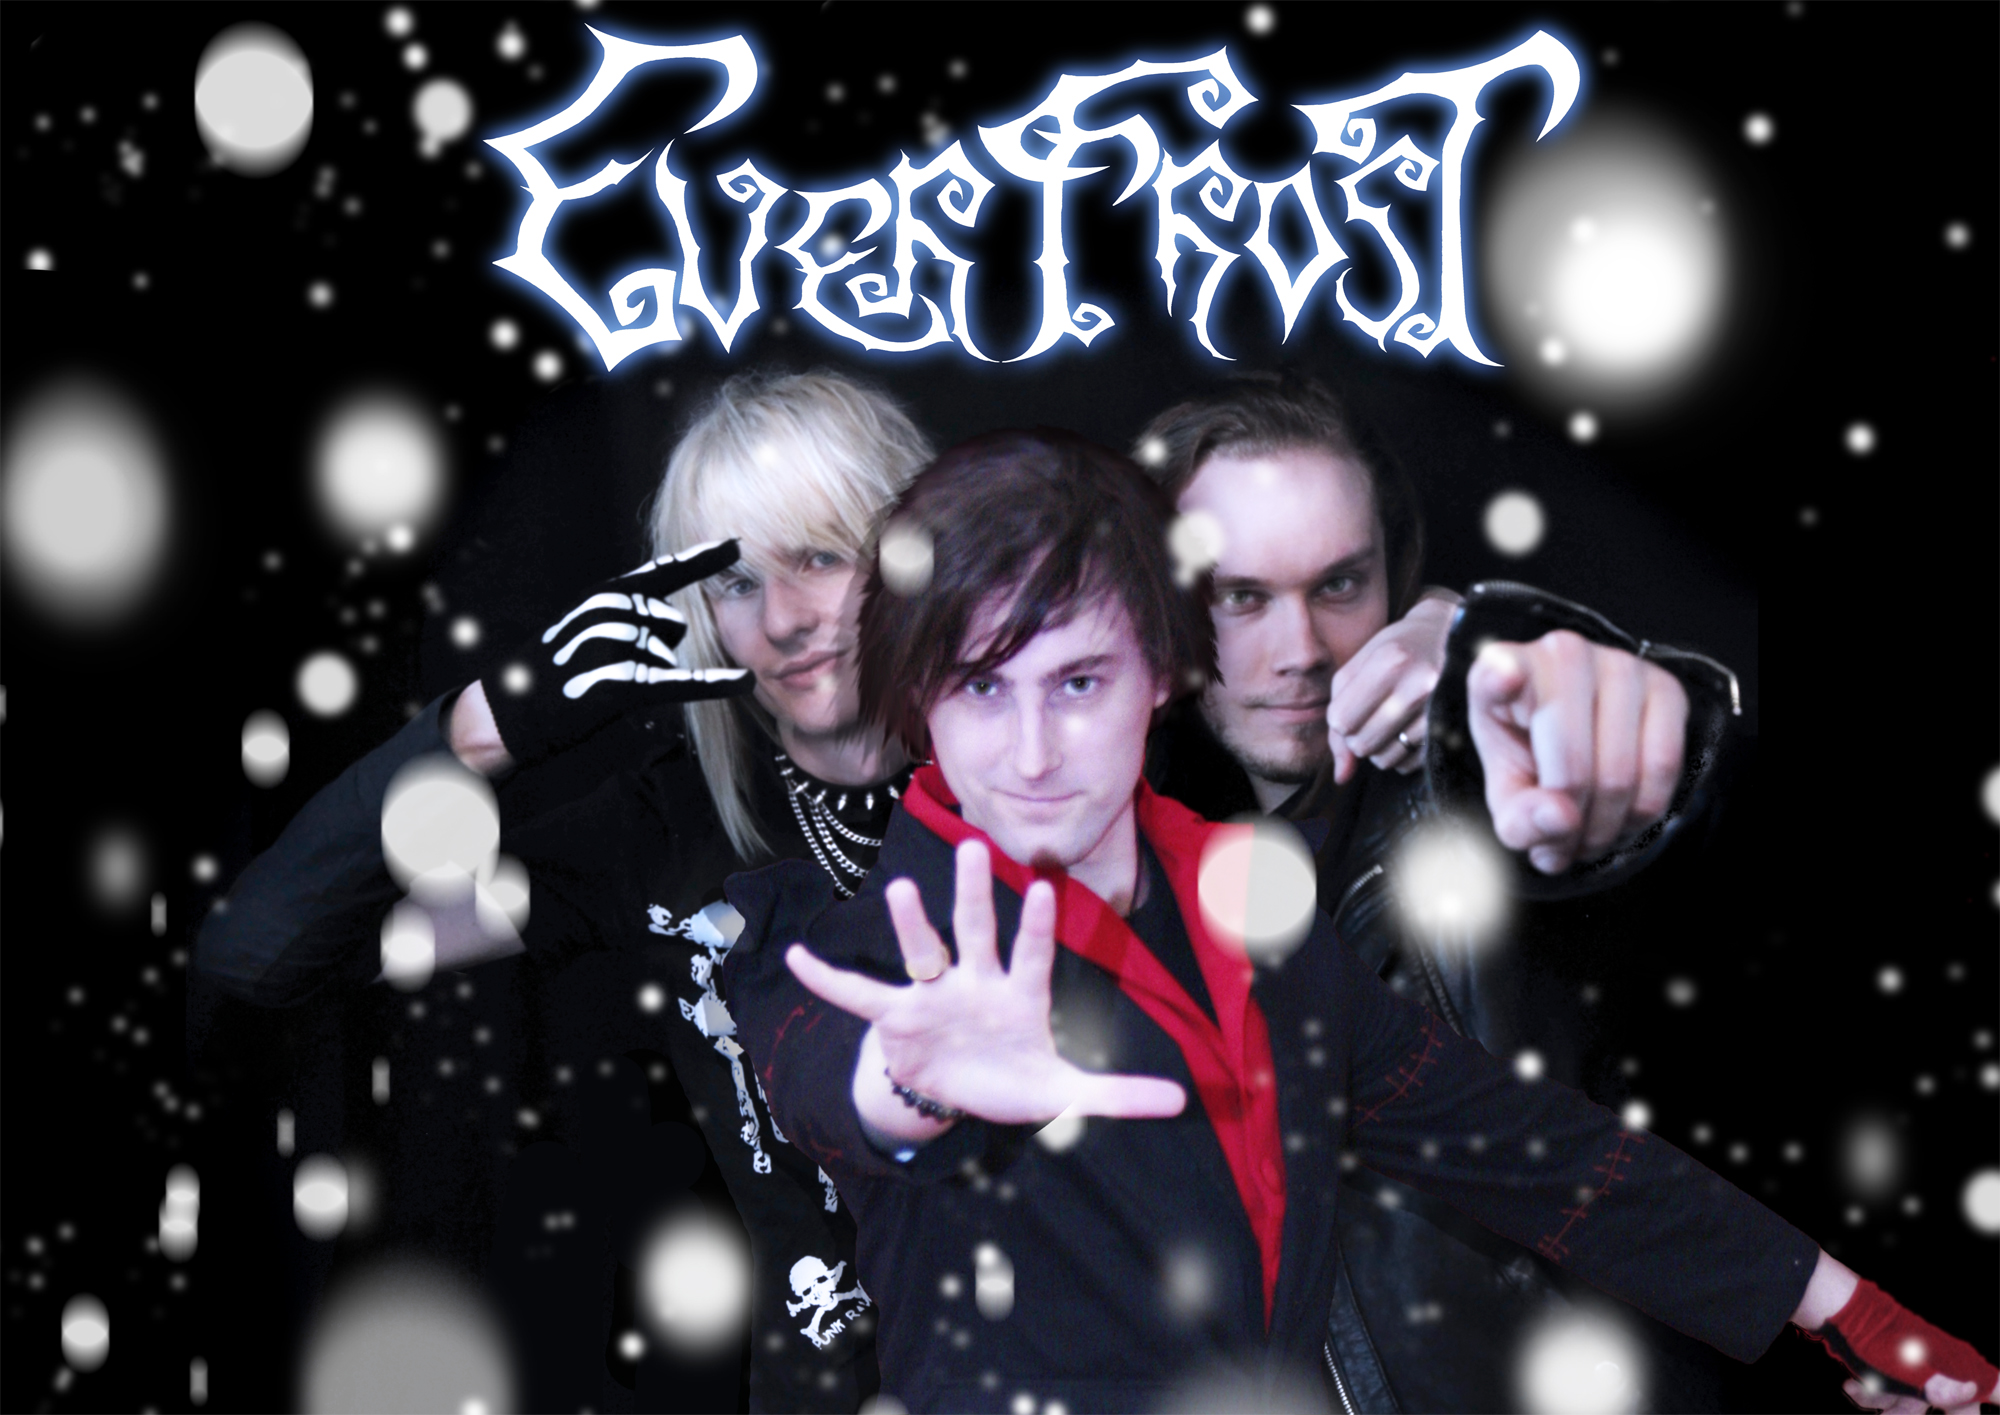 Everfrost silver nights group insta